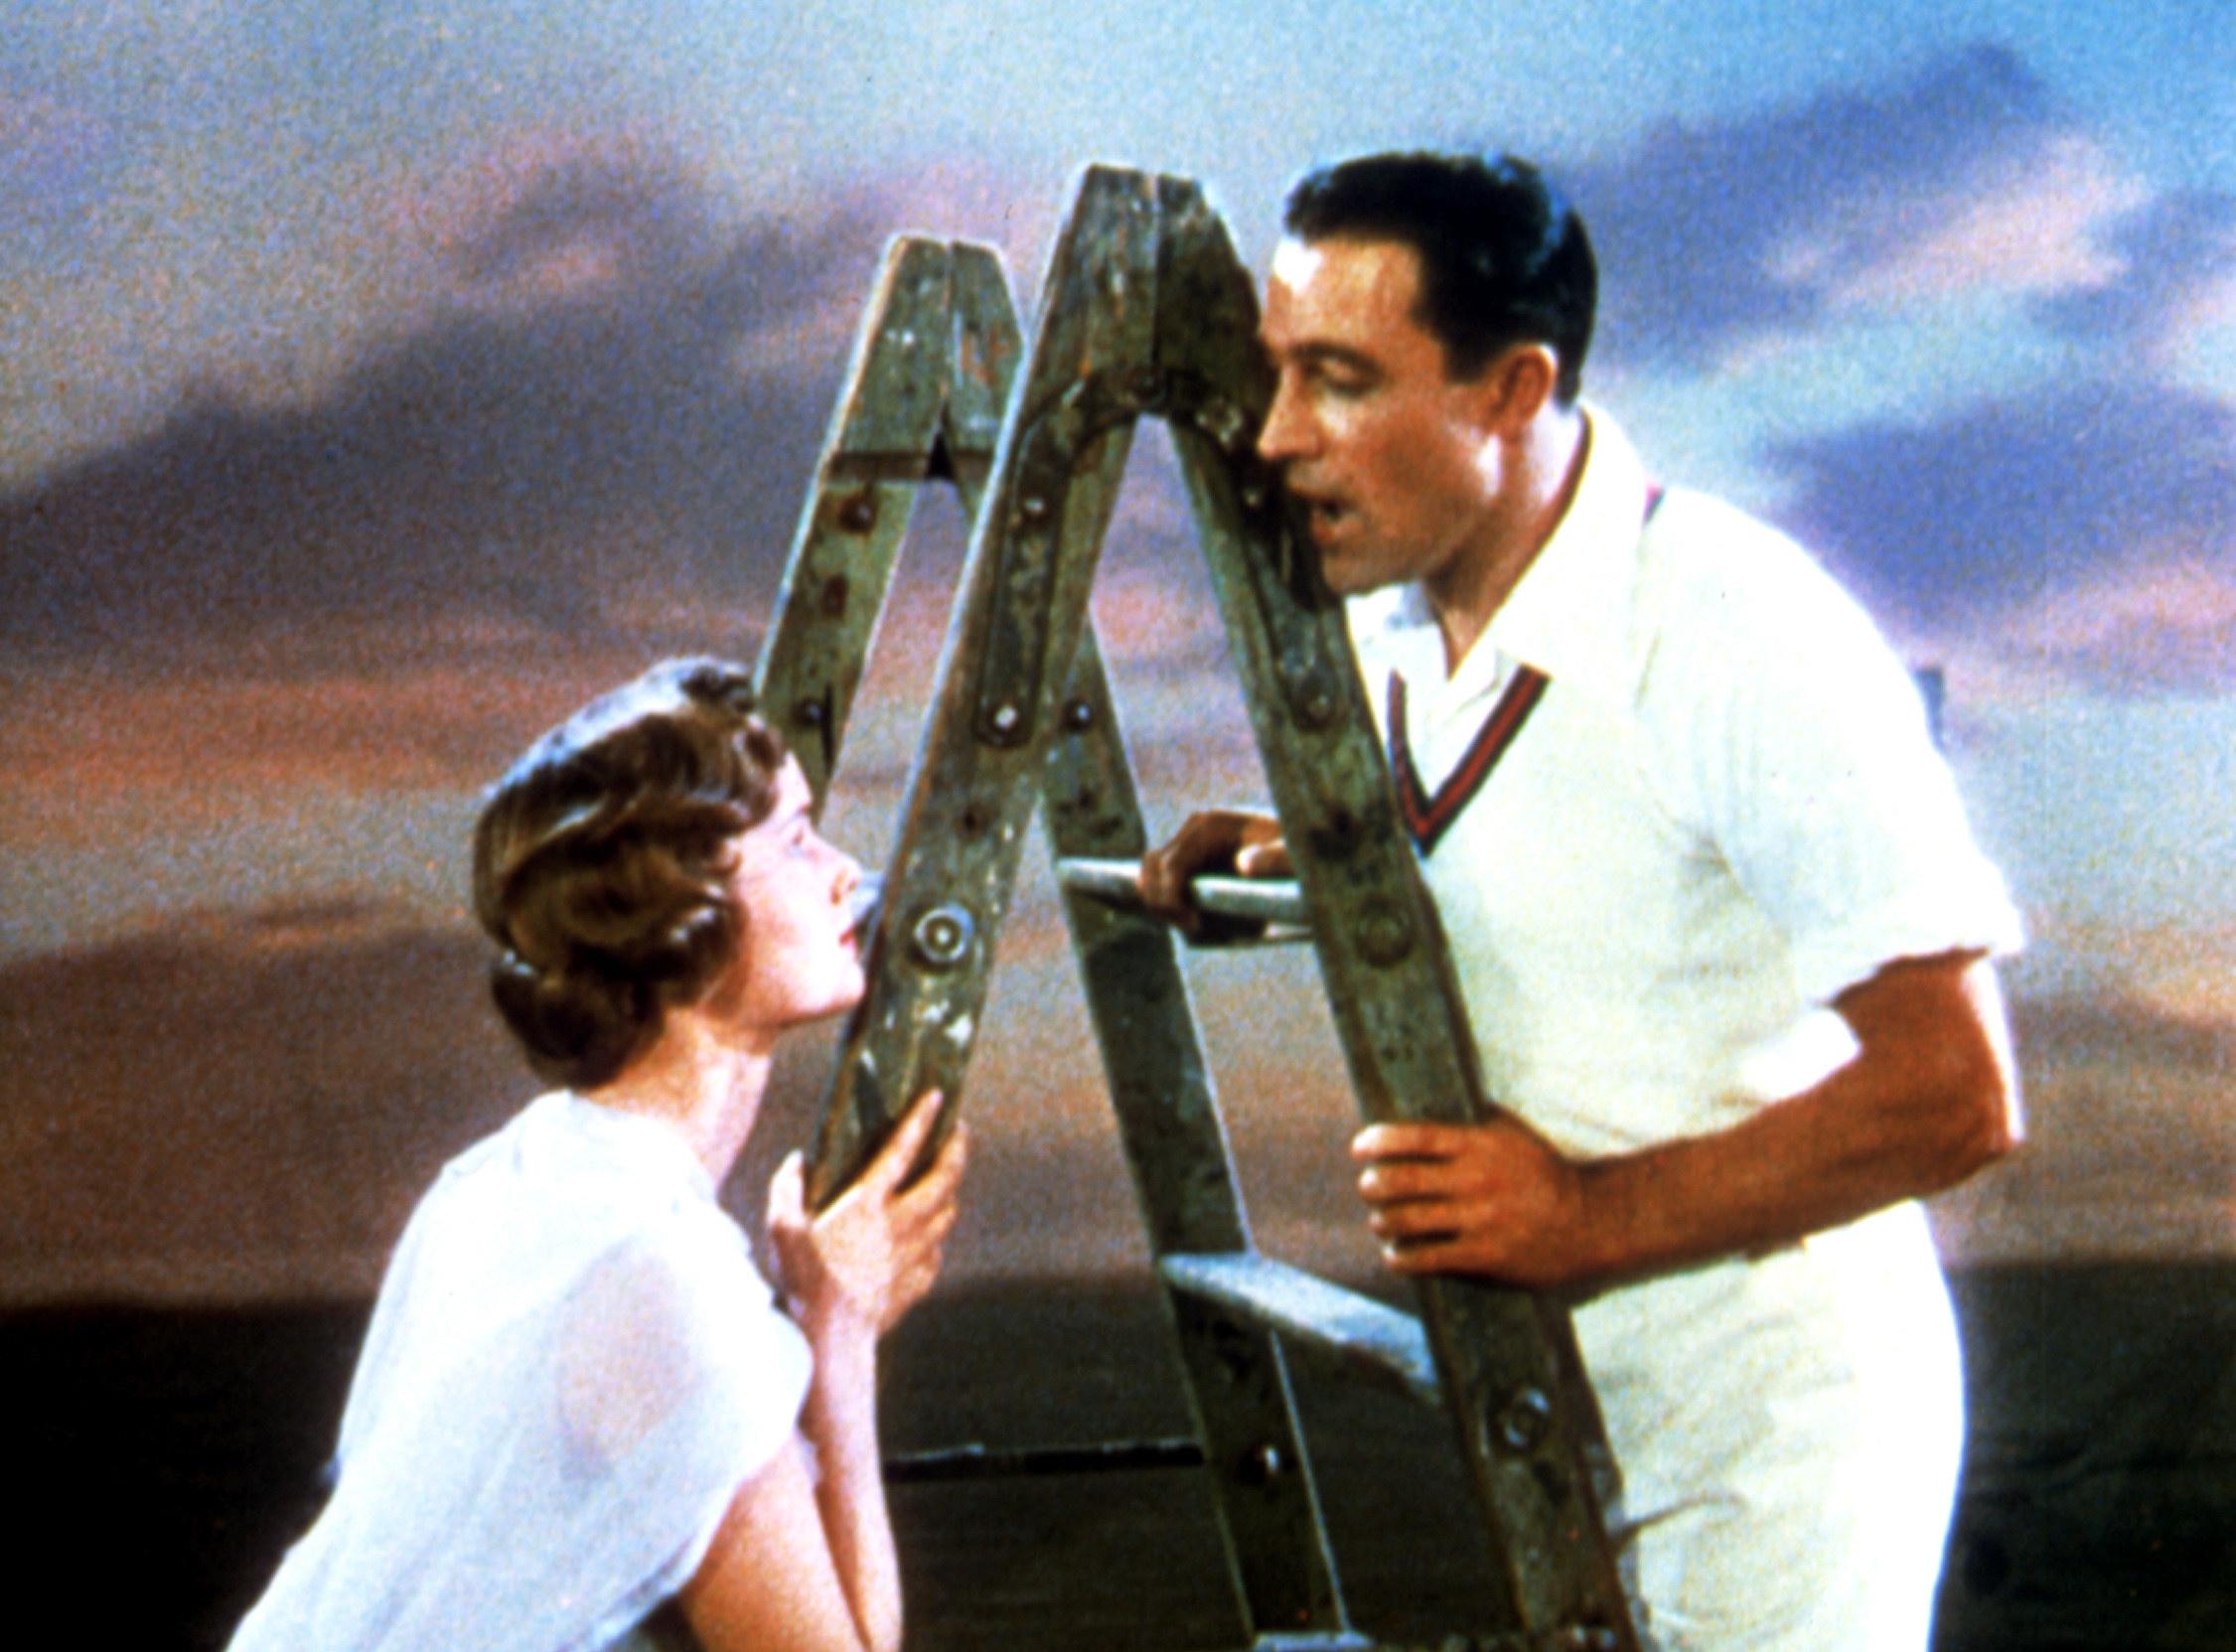 Don and Kathy singing together on a ladder